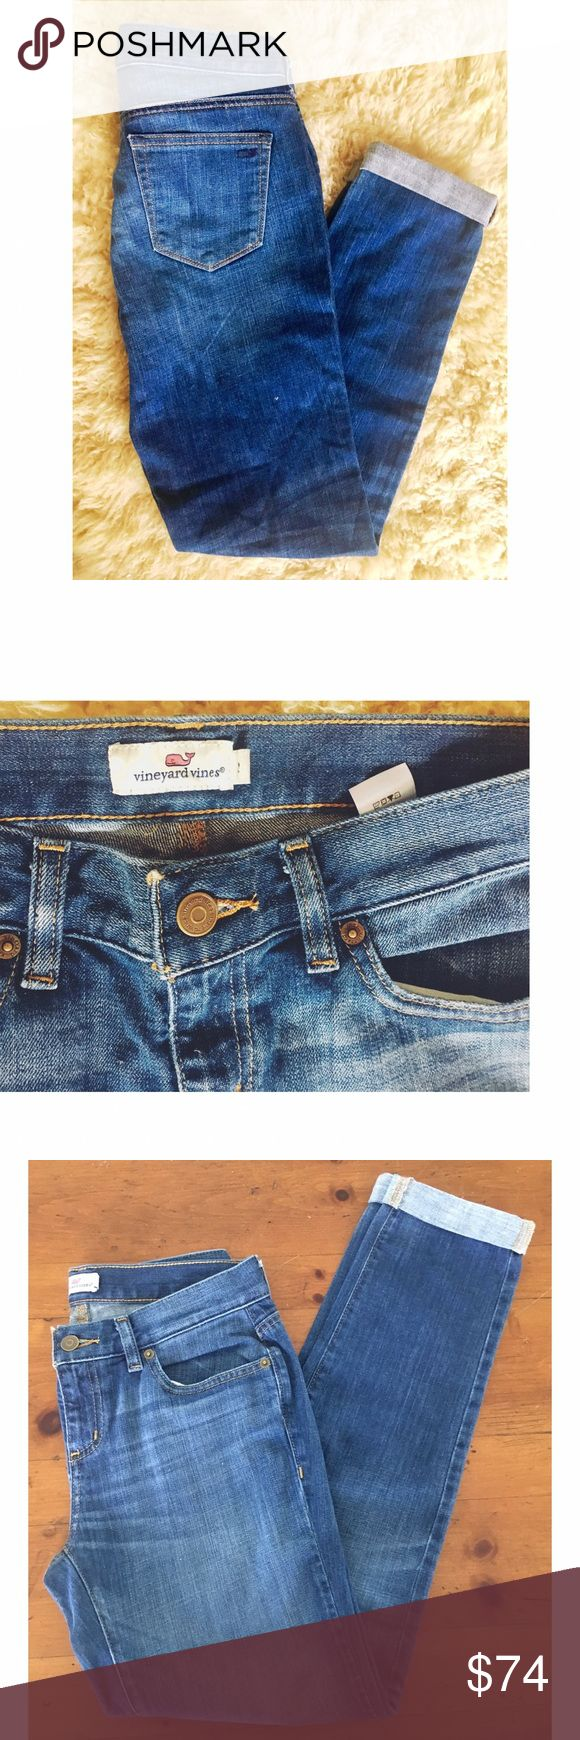 """Vineyard Vines Boyfriend or """"Tomboy"""" Jeans NWOT-2 The Vineyard Vines Guys did a couple of micro-collections for their rabid fan base - but they are fantastic for whomever.  VV known for their cottons - these are mid-weight 99/1%s with fine dip dying.  Ret $108. Called """"The Tomboy- -like BF roomier in seat and thighs. They come rolled up at inseam 28"""".  Never worn- tags are off for some reason. They can unroll but they are adorable as they are. Yes the whale logo is on back pocket blending in…"""